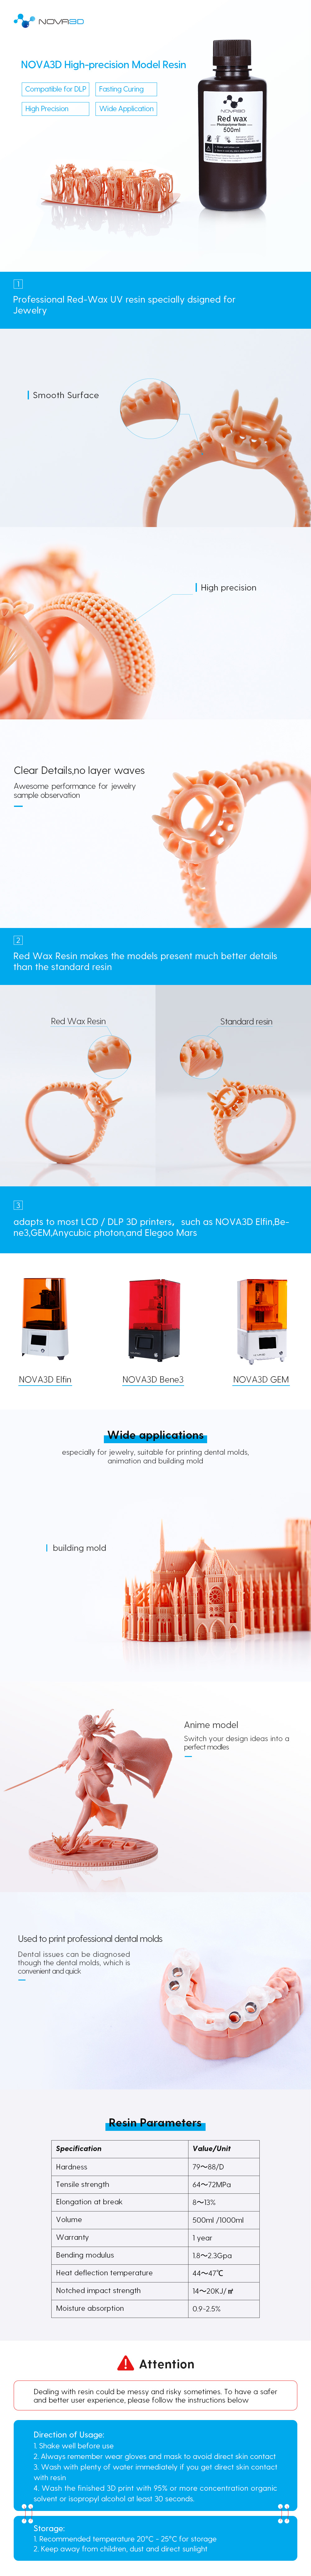 Nova3d red Wax resin uv photosensitive resin 405nm for anime jewelry dlp lcd 3d printer 500ml